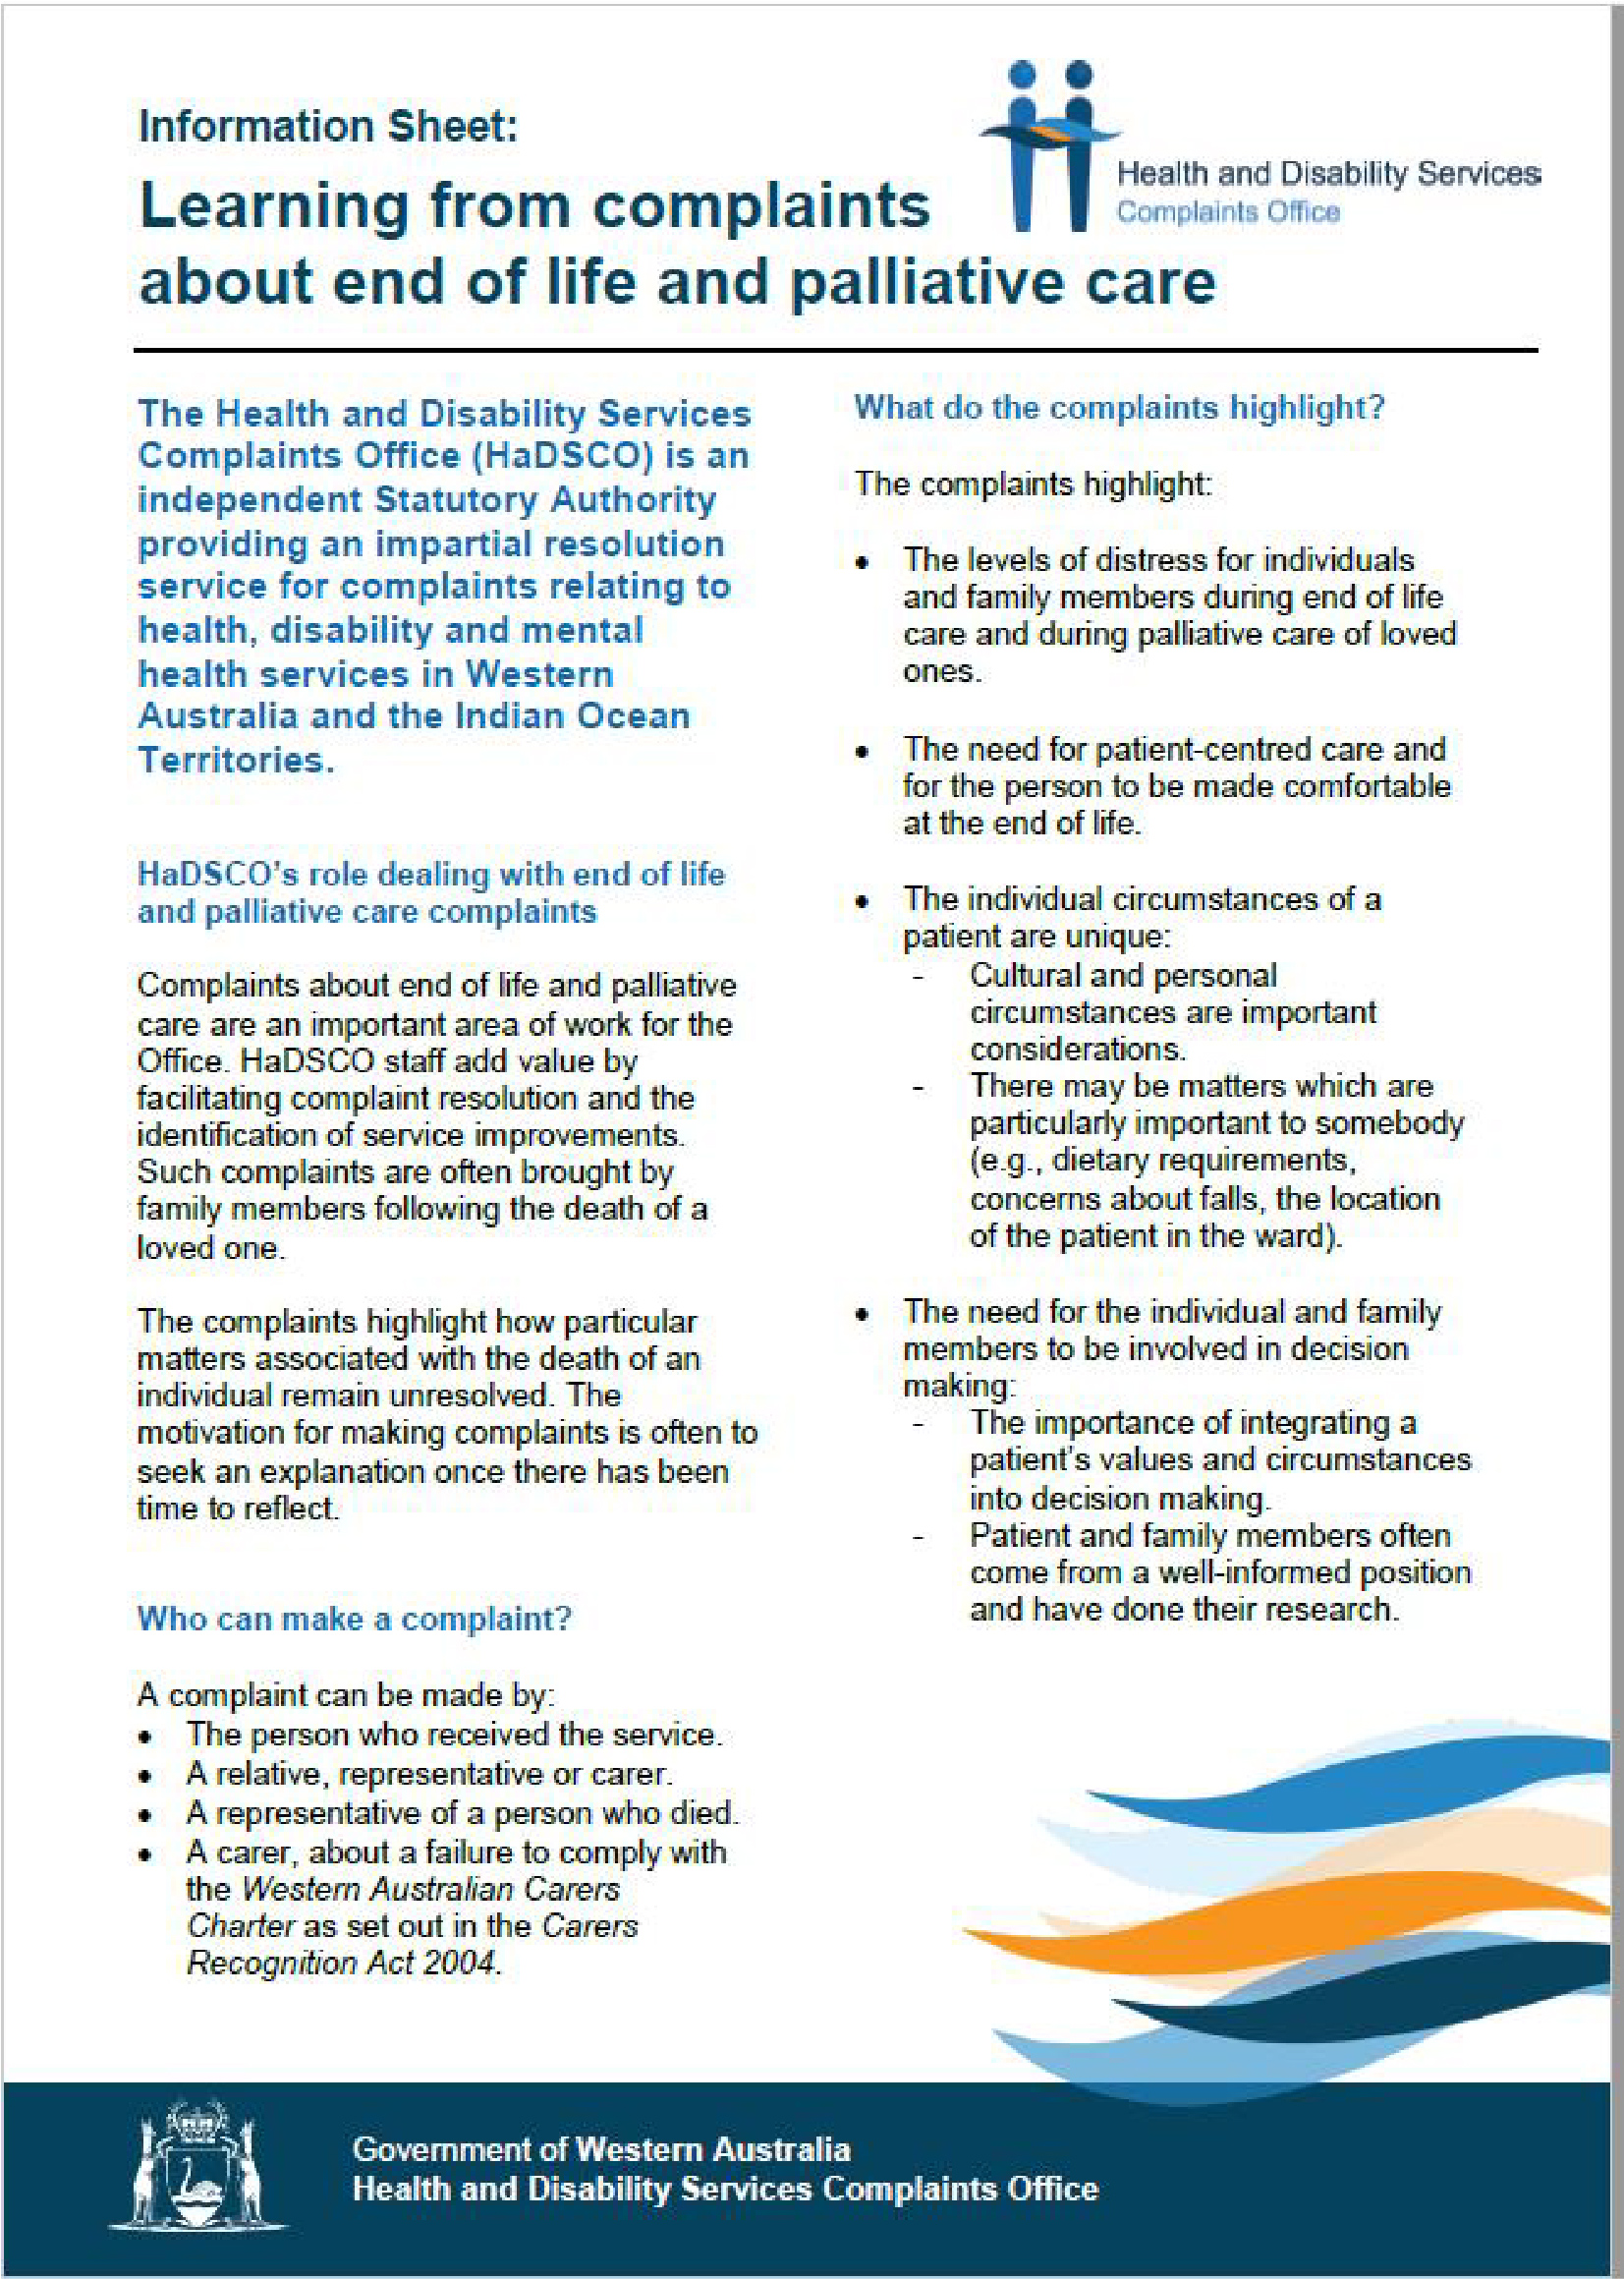 Information Sheet Learning from complaints about end of life and palliative care